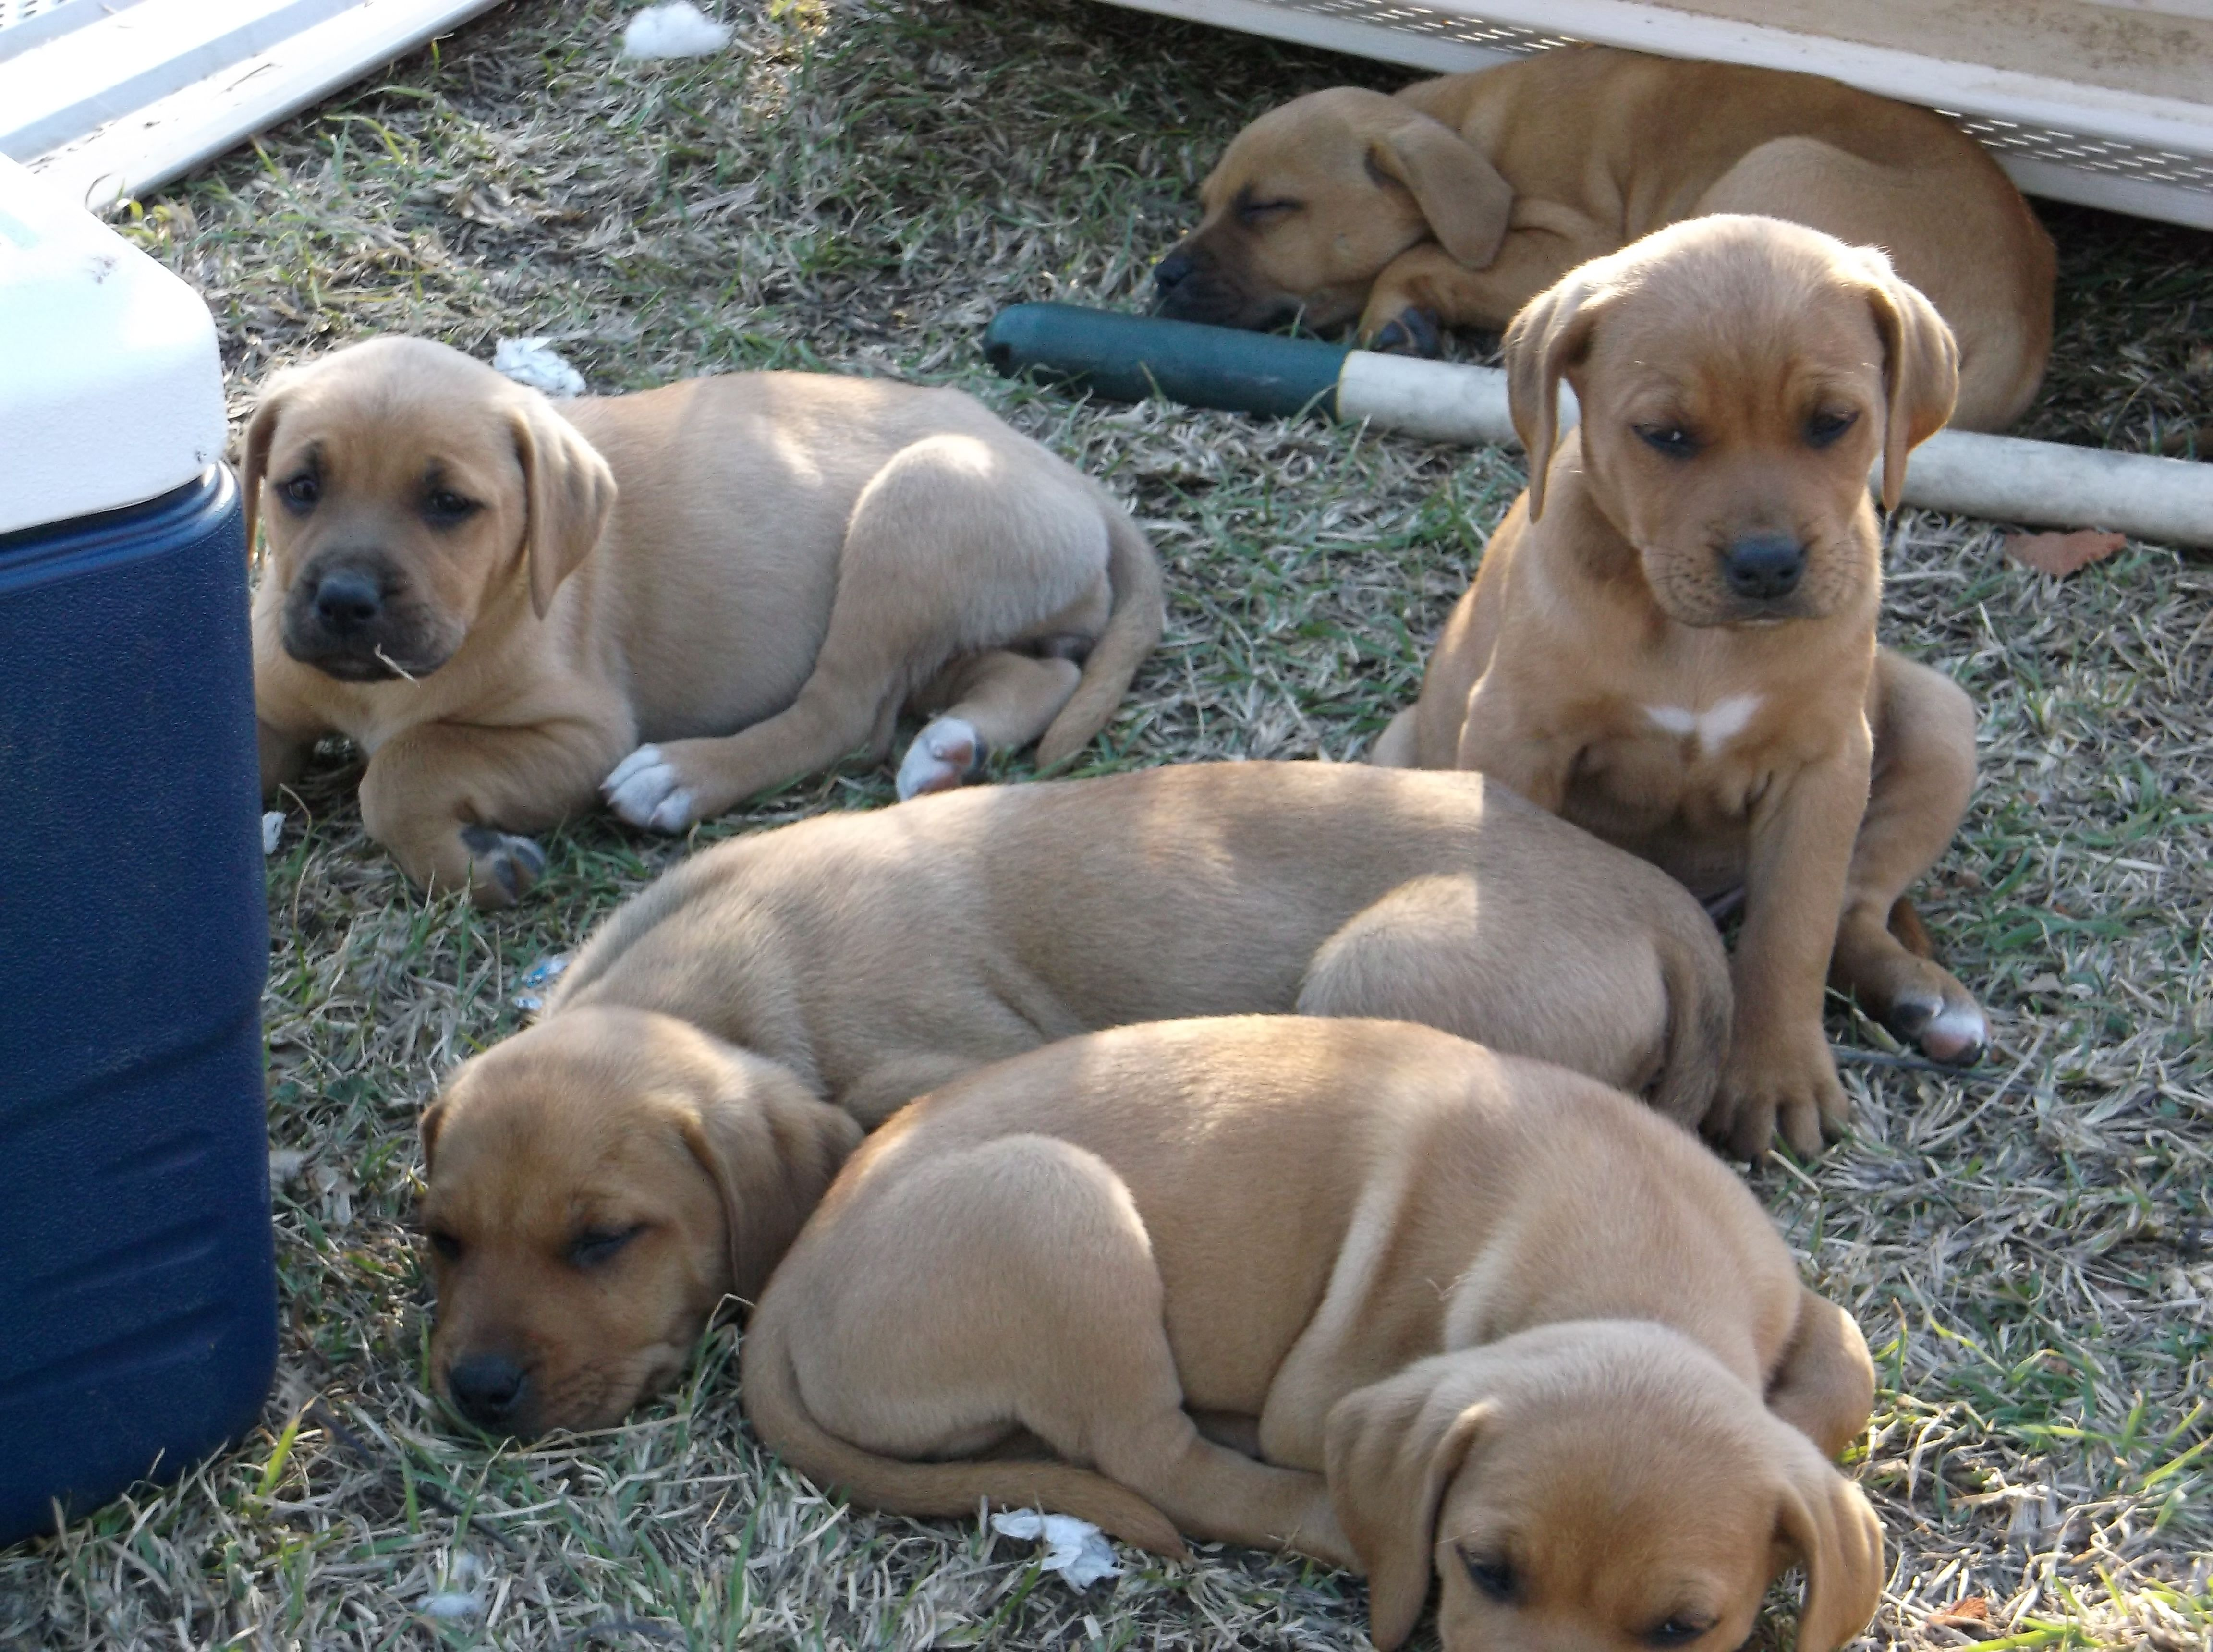 Puppies 8 Weeks Old 2 Males 6 Females Come On Look At Those